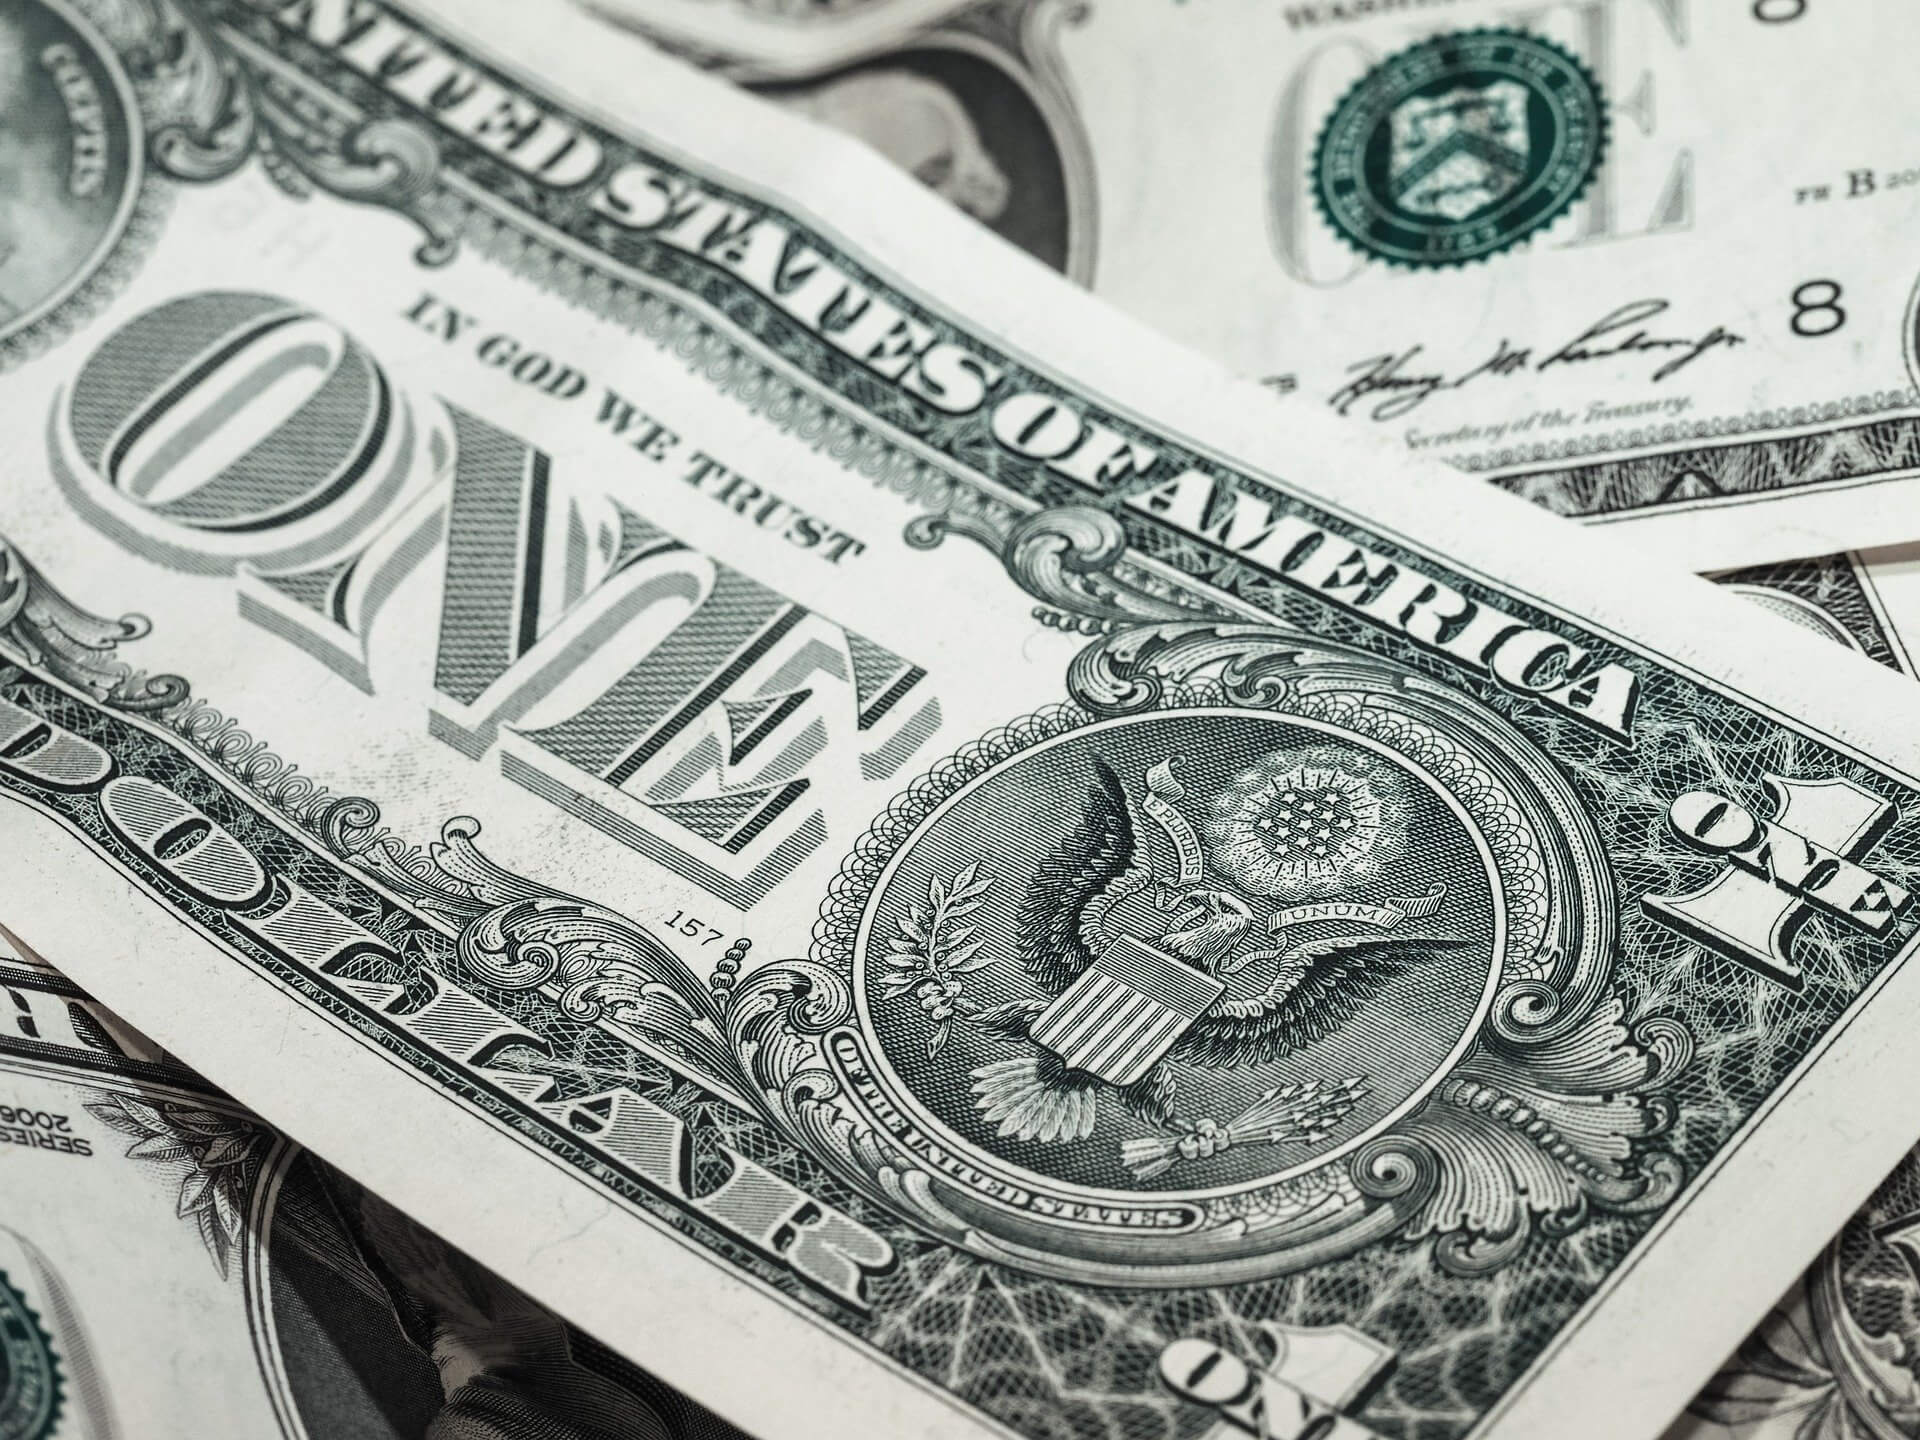 Finding unclaimed money